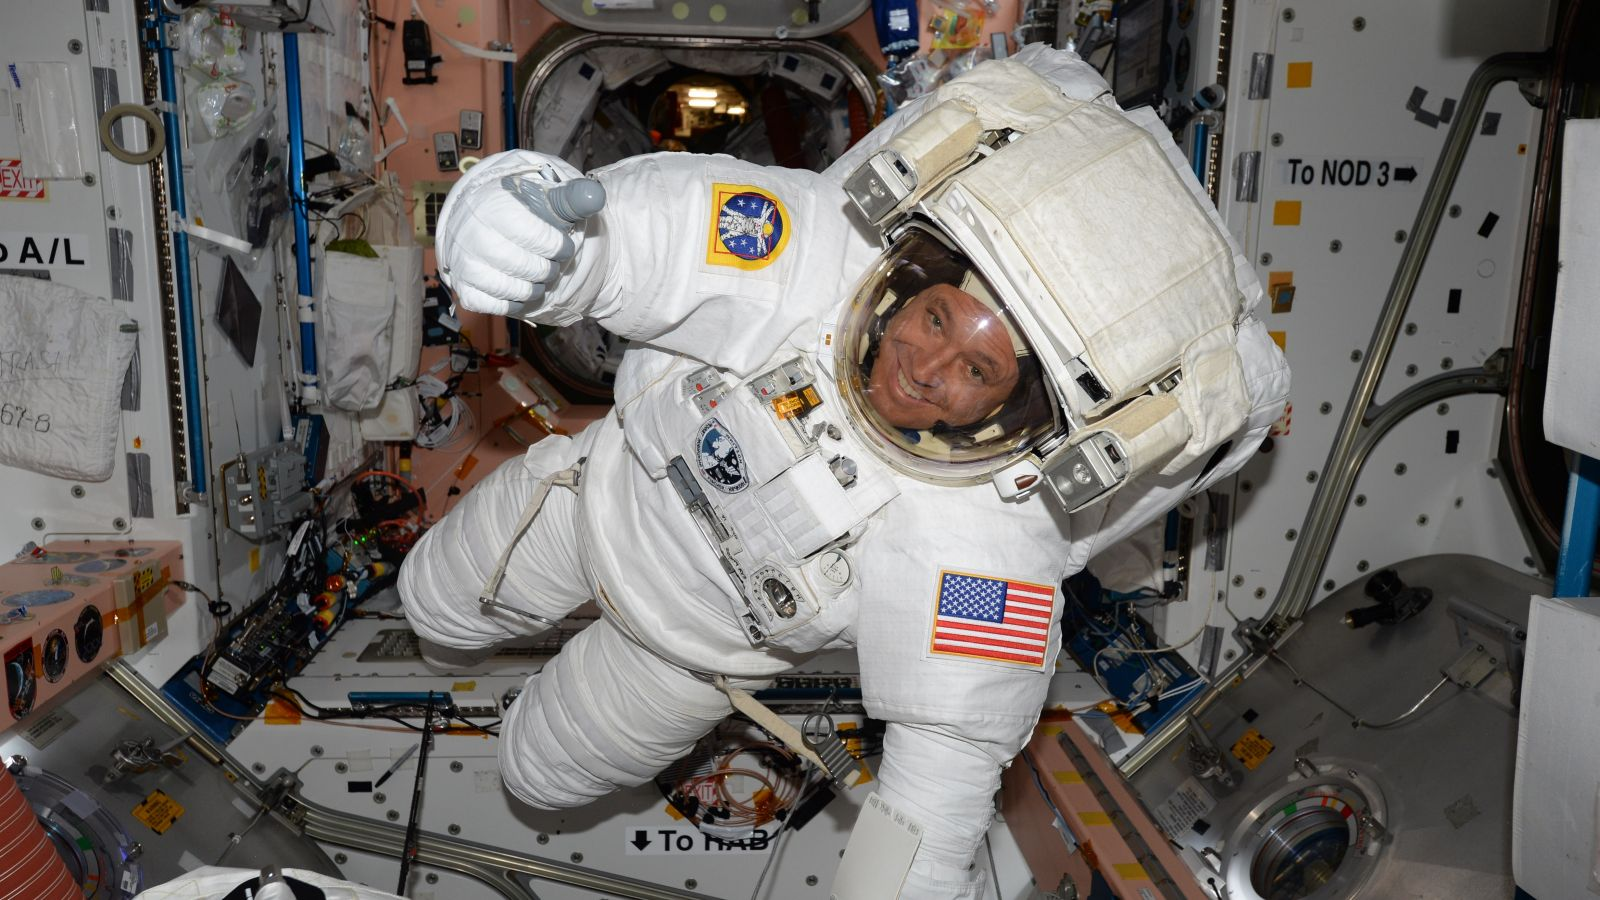 'Awesomesauce,' proclaims US astronaut on historic spacewalk